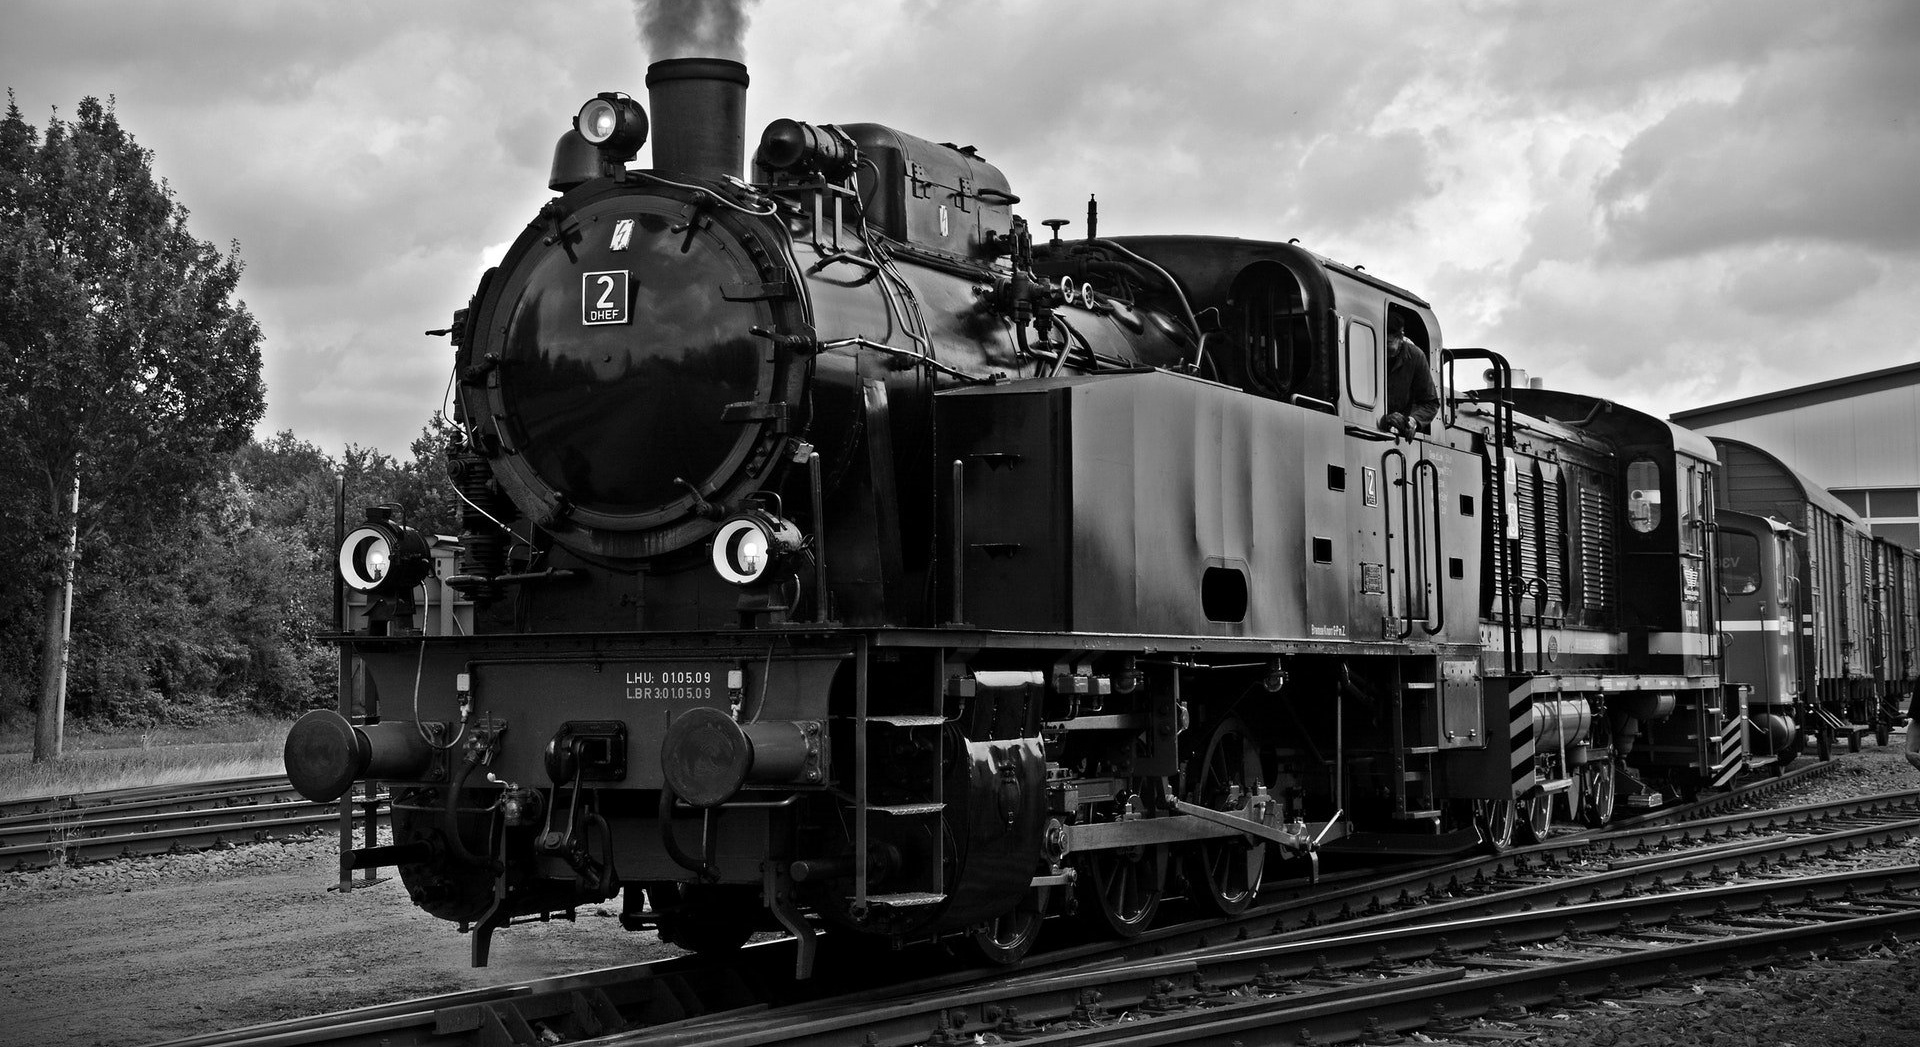 black and white steam train running on train track-616595-edited